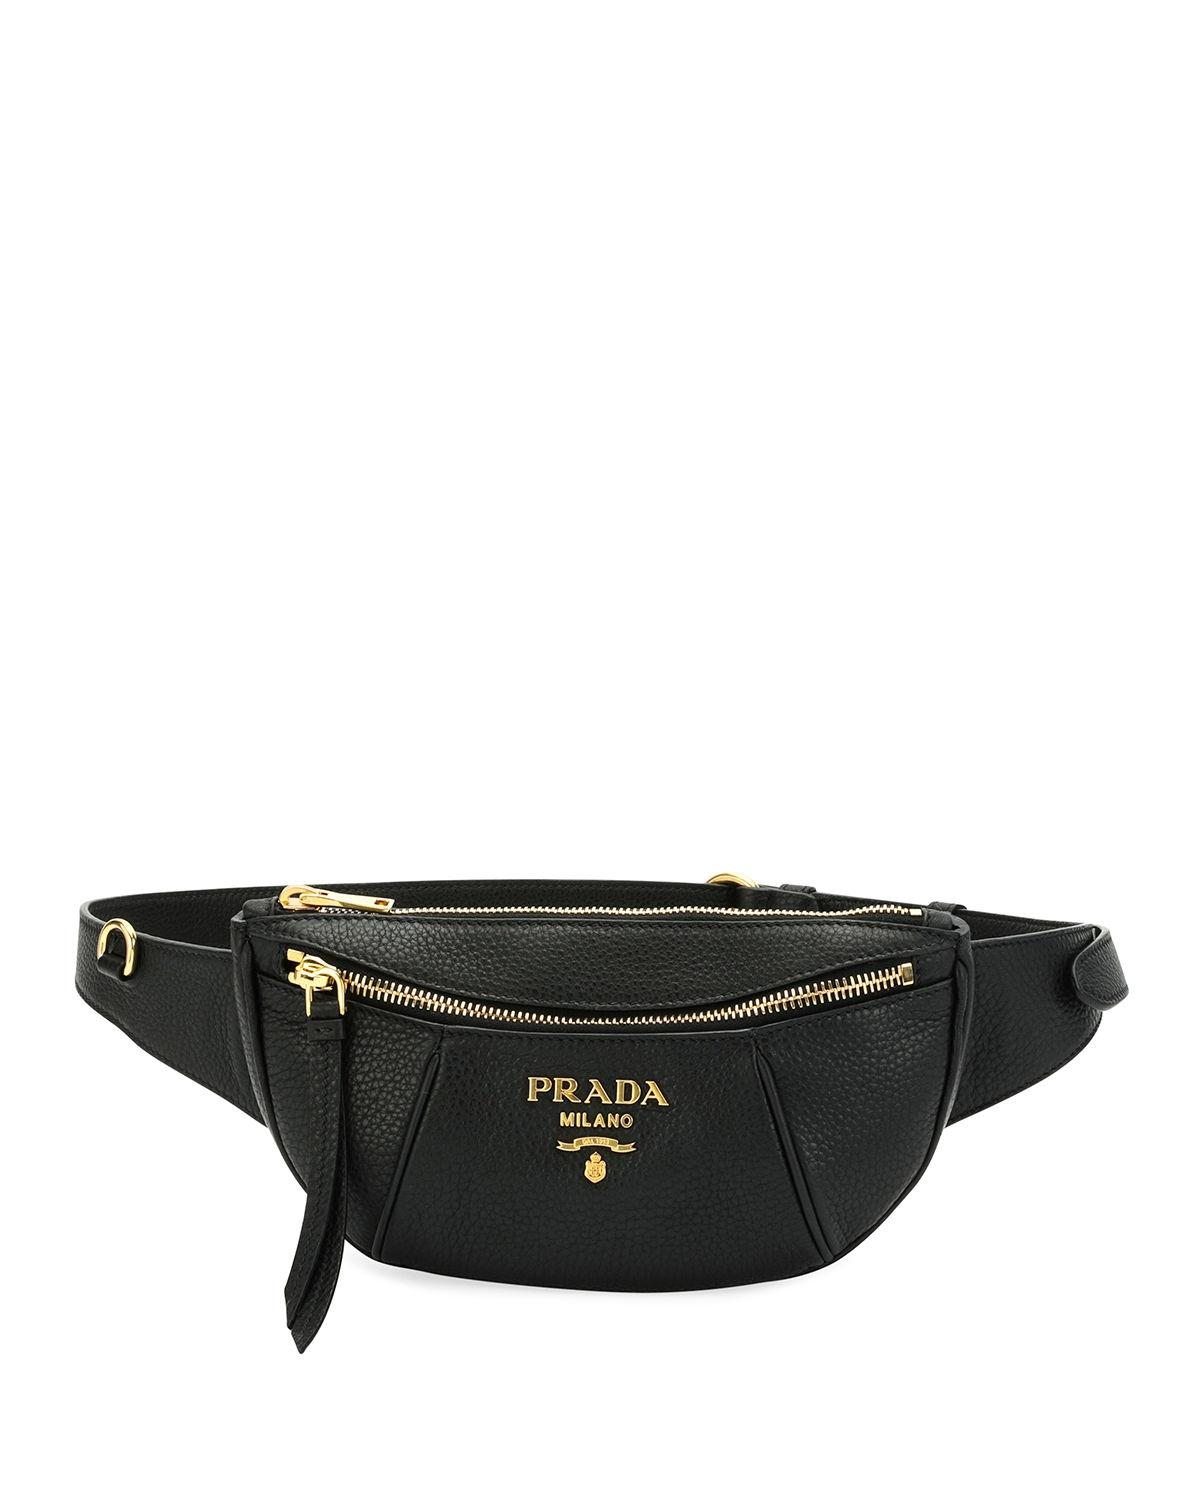 876242b41e0b ... closeout prada cross body bag 3d08a c7ae5 closeout prada cross body bag  3d08a c7ae5; purchase prada cahier belt bag prada garnet redblack ...